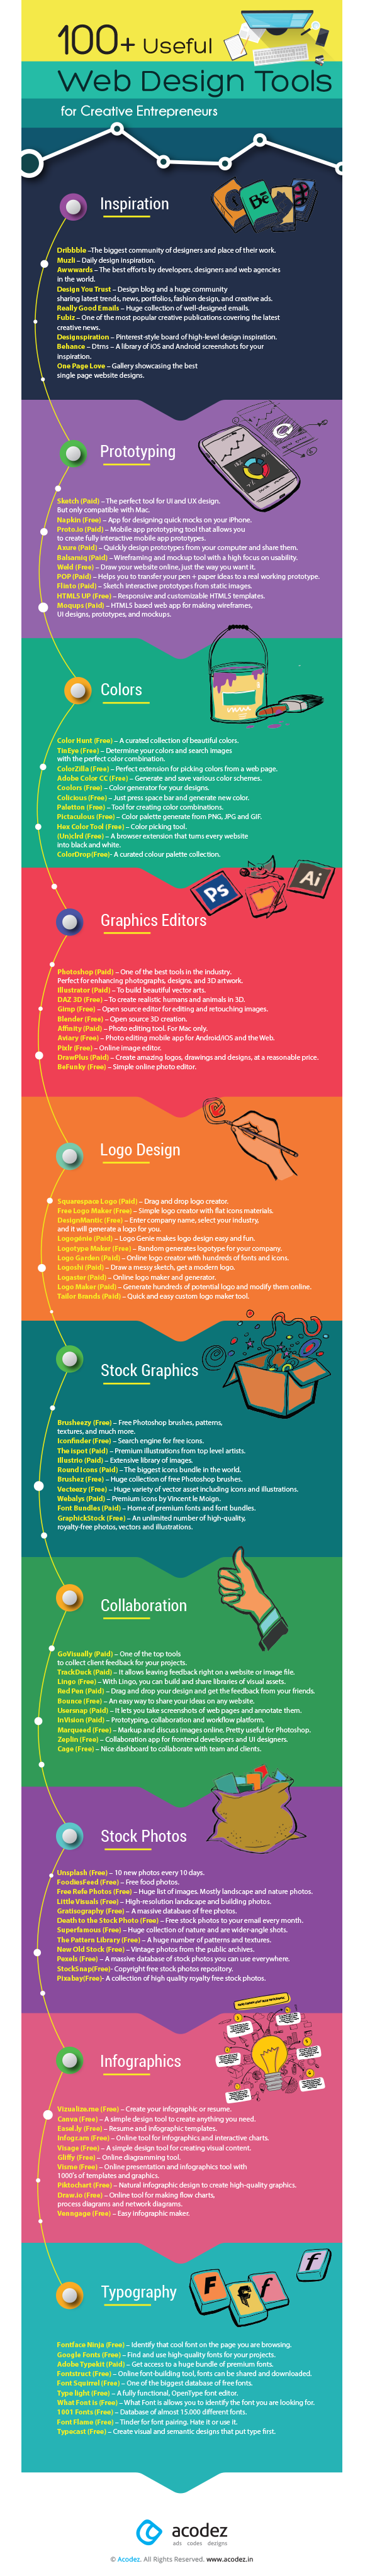 Web designing tools for creative entrepreneurs